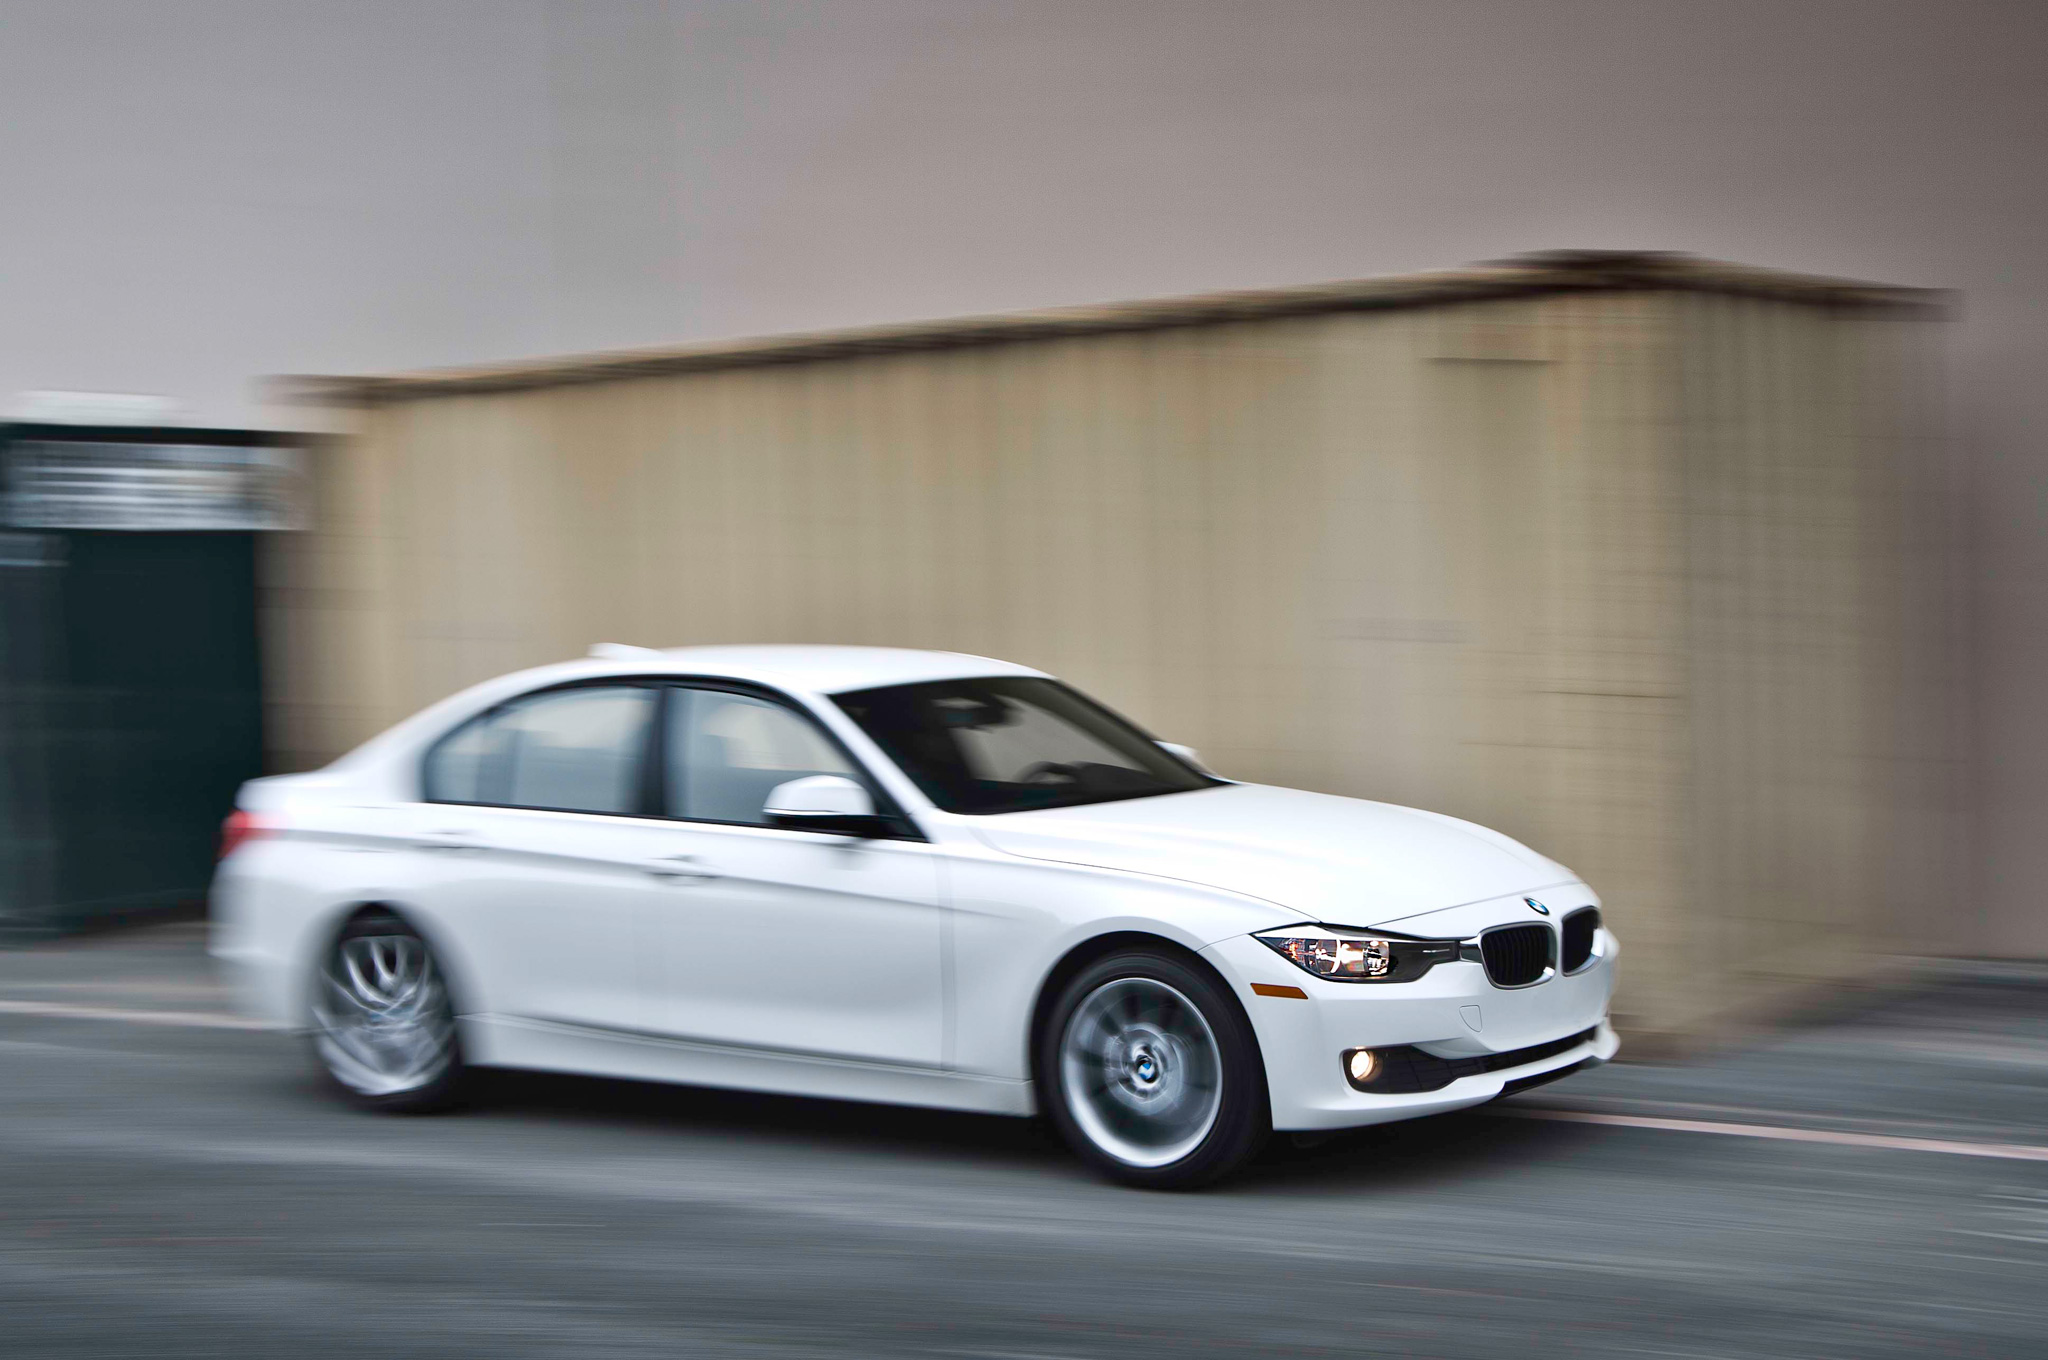 2013 BMW 320i First Test - Motor Trend - MotorTrend